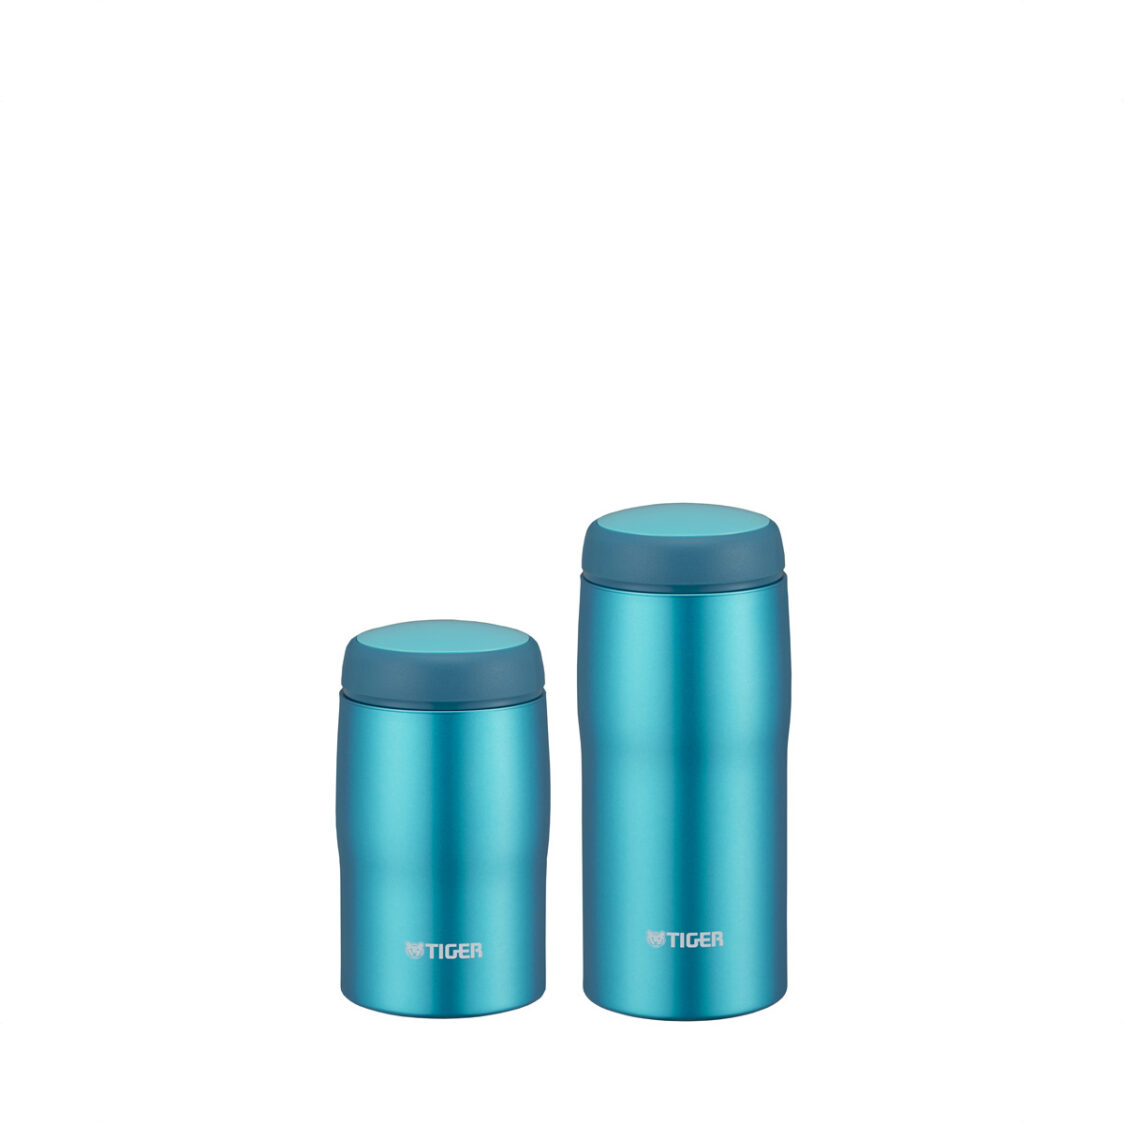 Tiger 240ml360ml Double Stainless Steel Mug Set Made In Japan Bright Blue